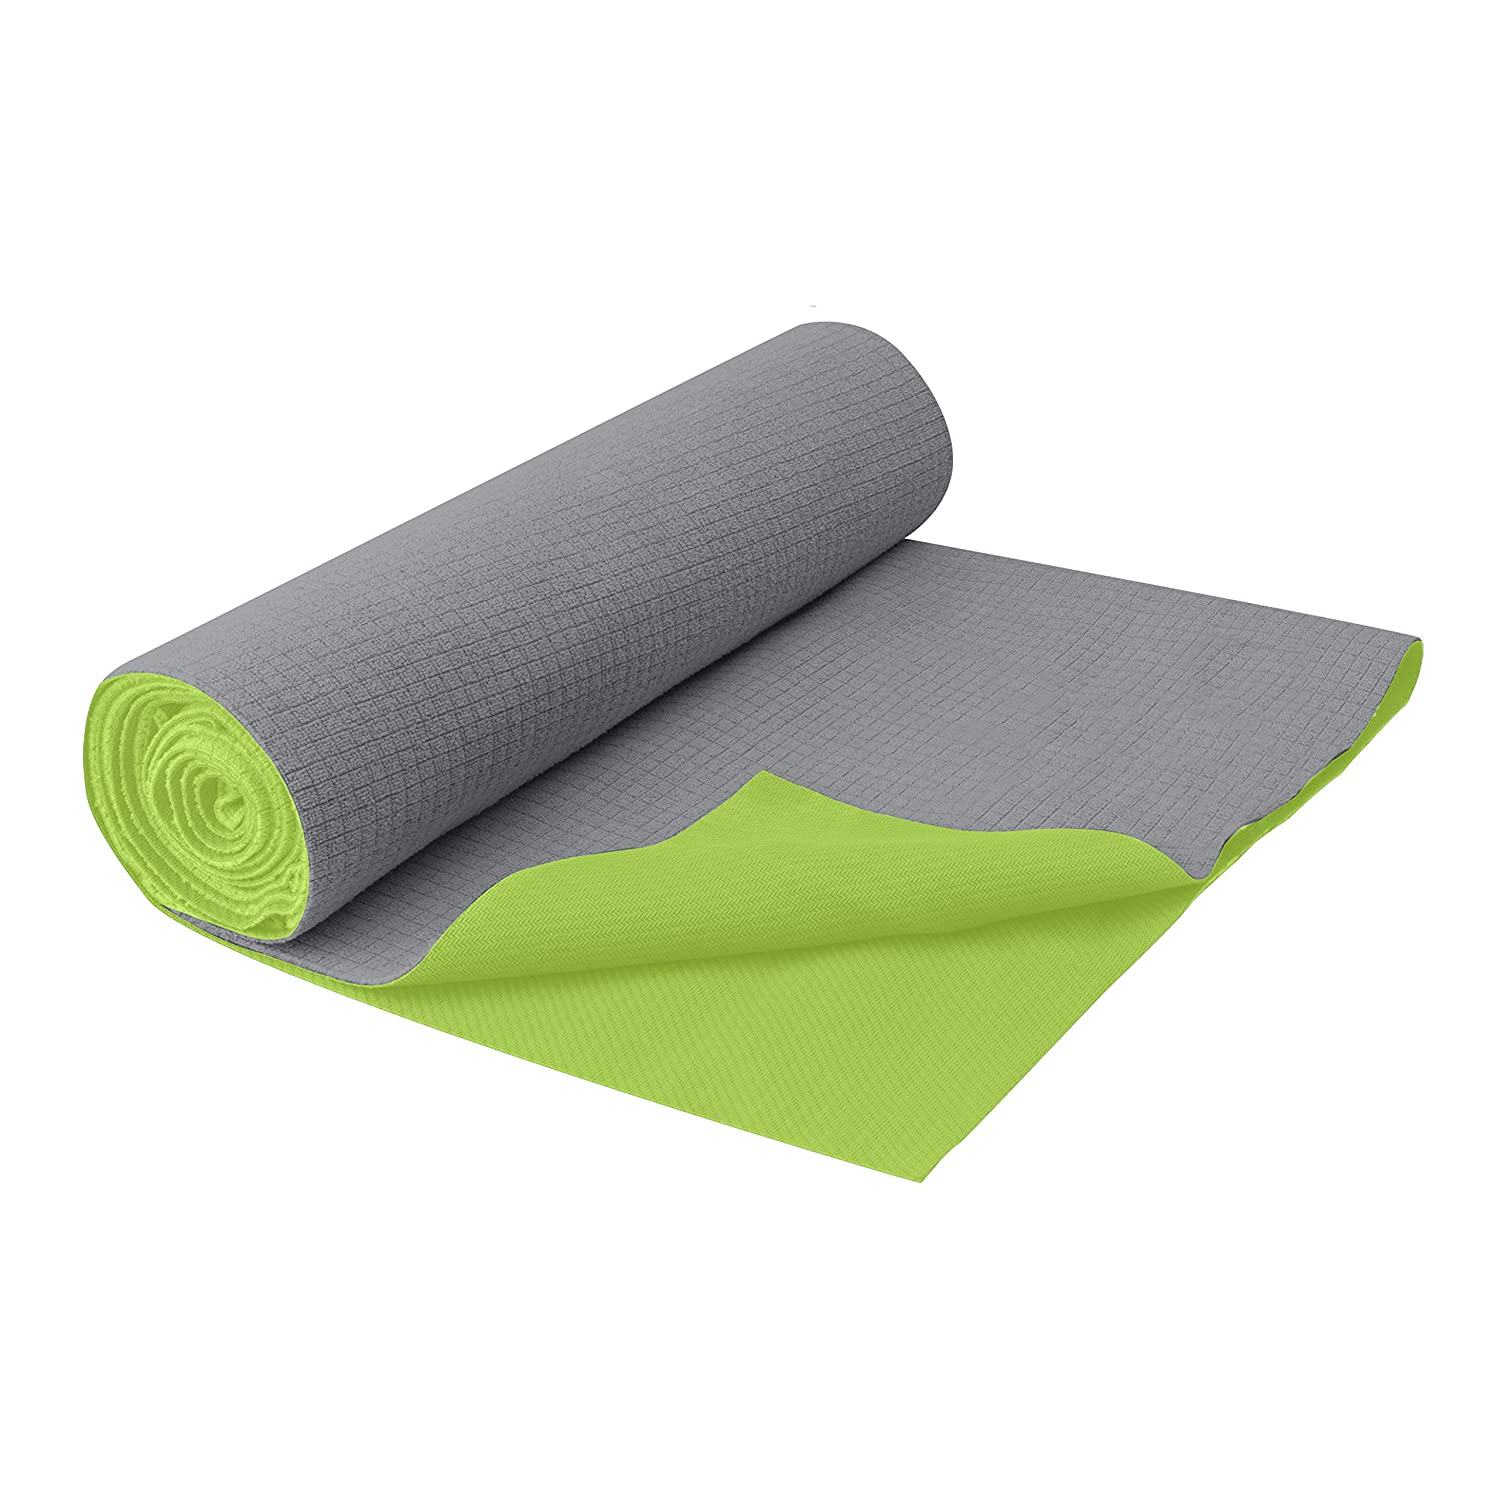 mat sportswear travel strap products machine activewear yoga folded sustainable miss vegan light natural runner washable ocean eco pilates